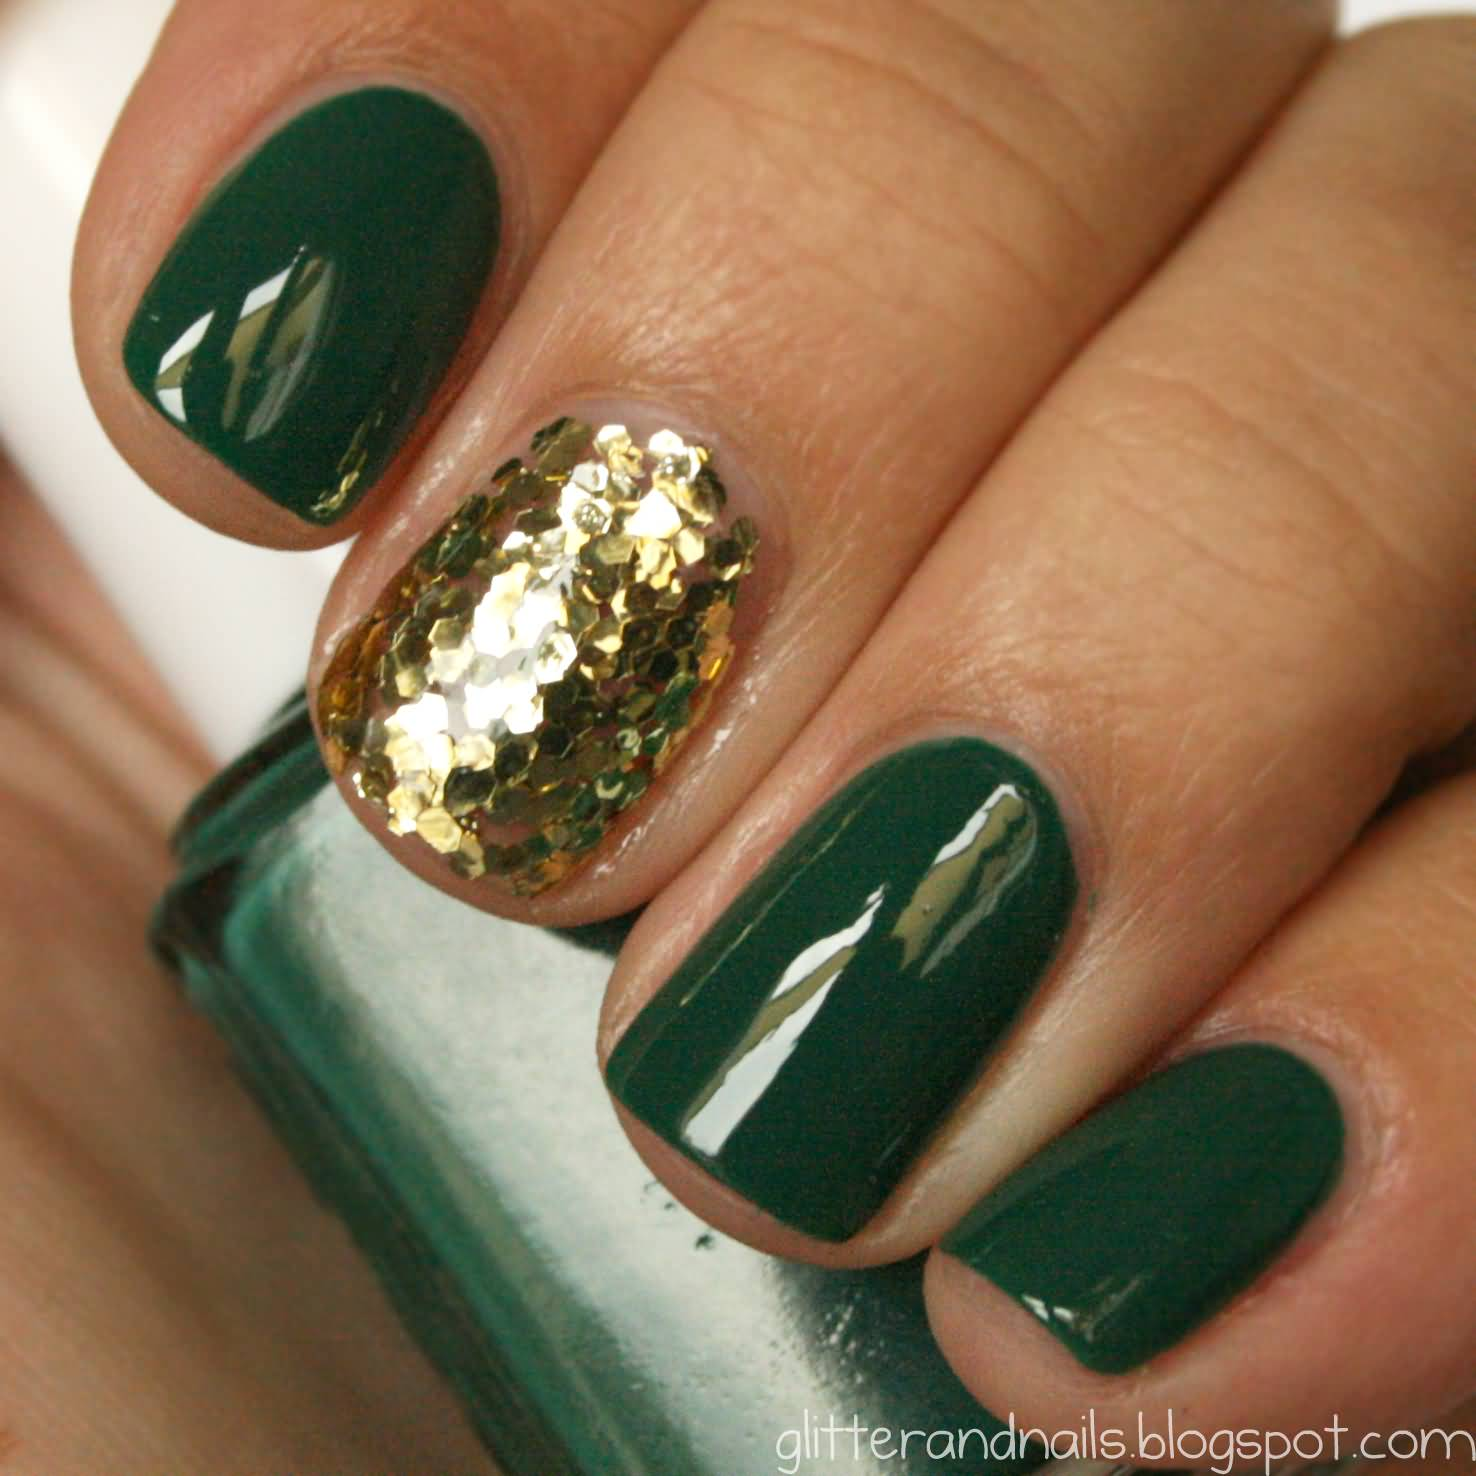 Glossy Green Nails With Accent Gold Glitter Nail Art